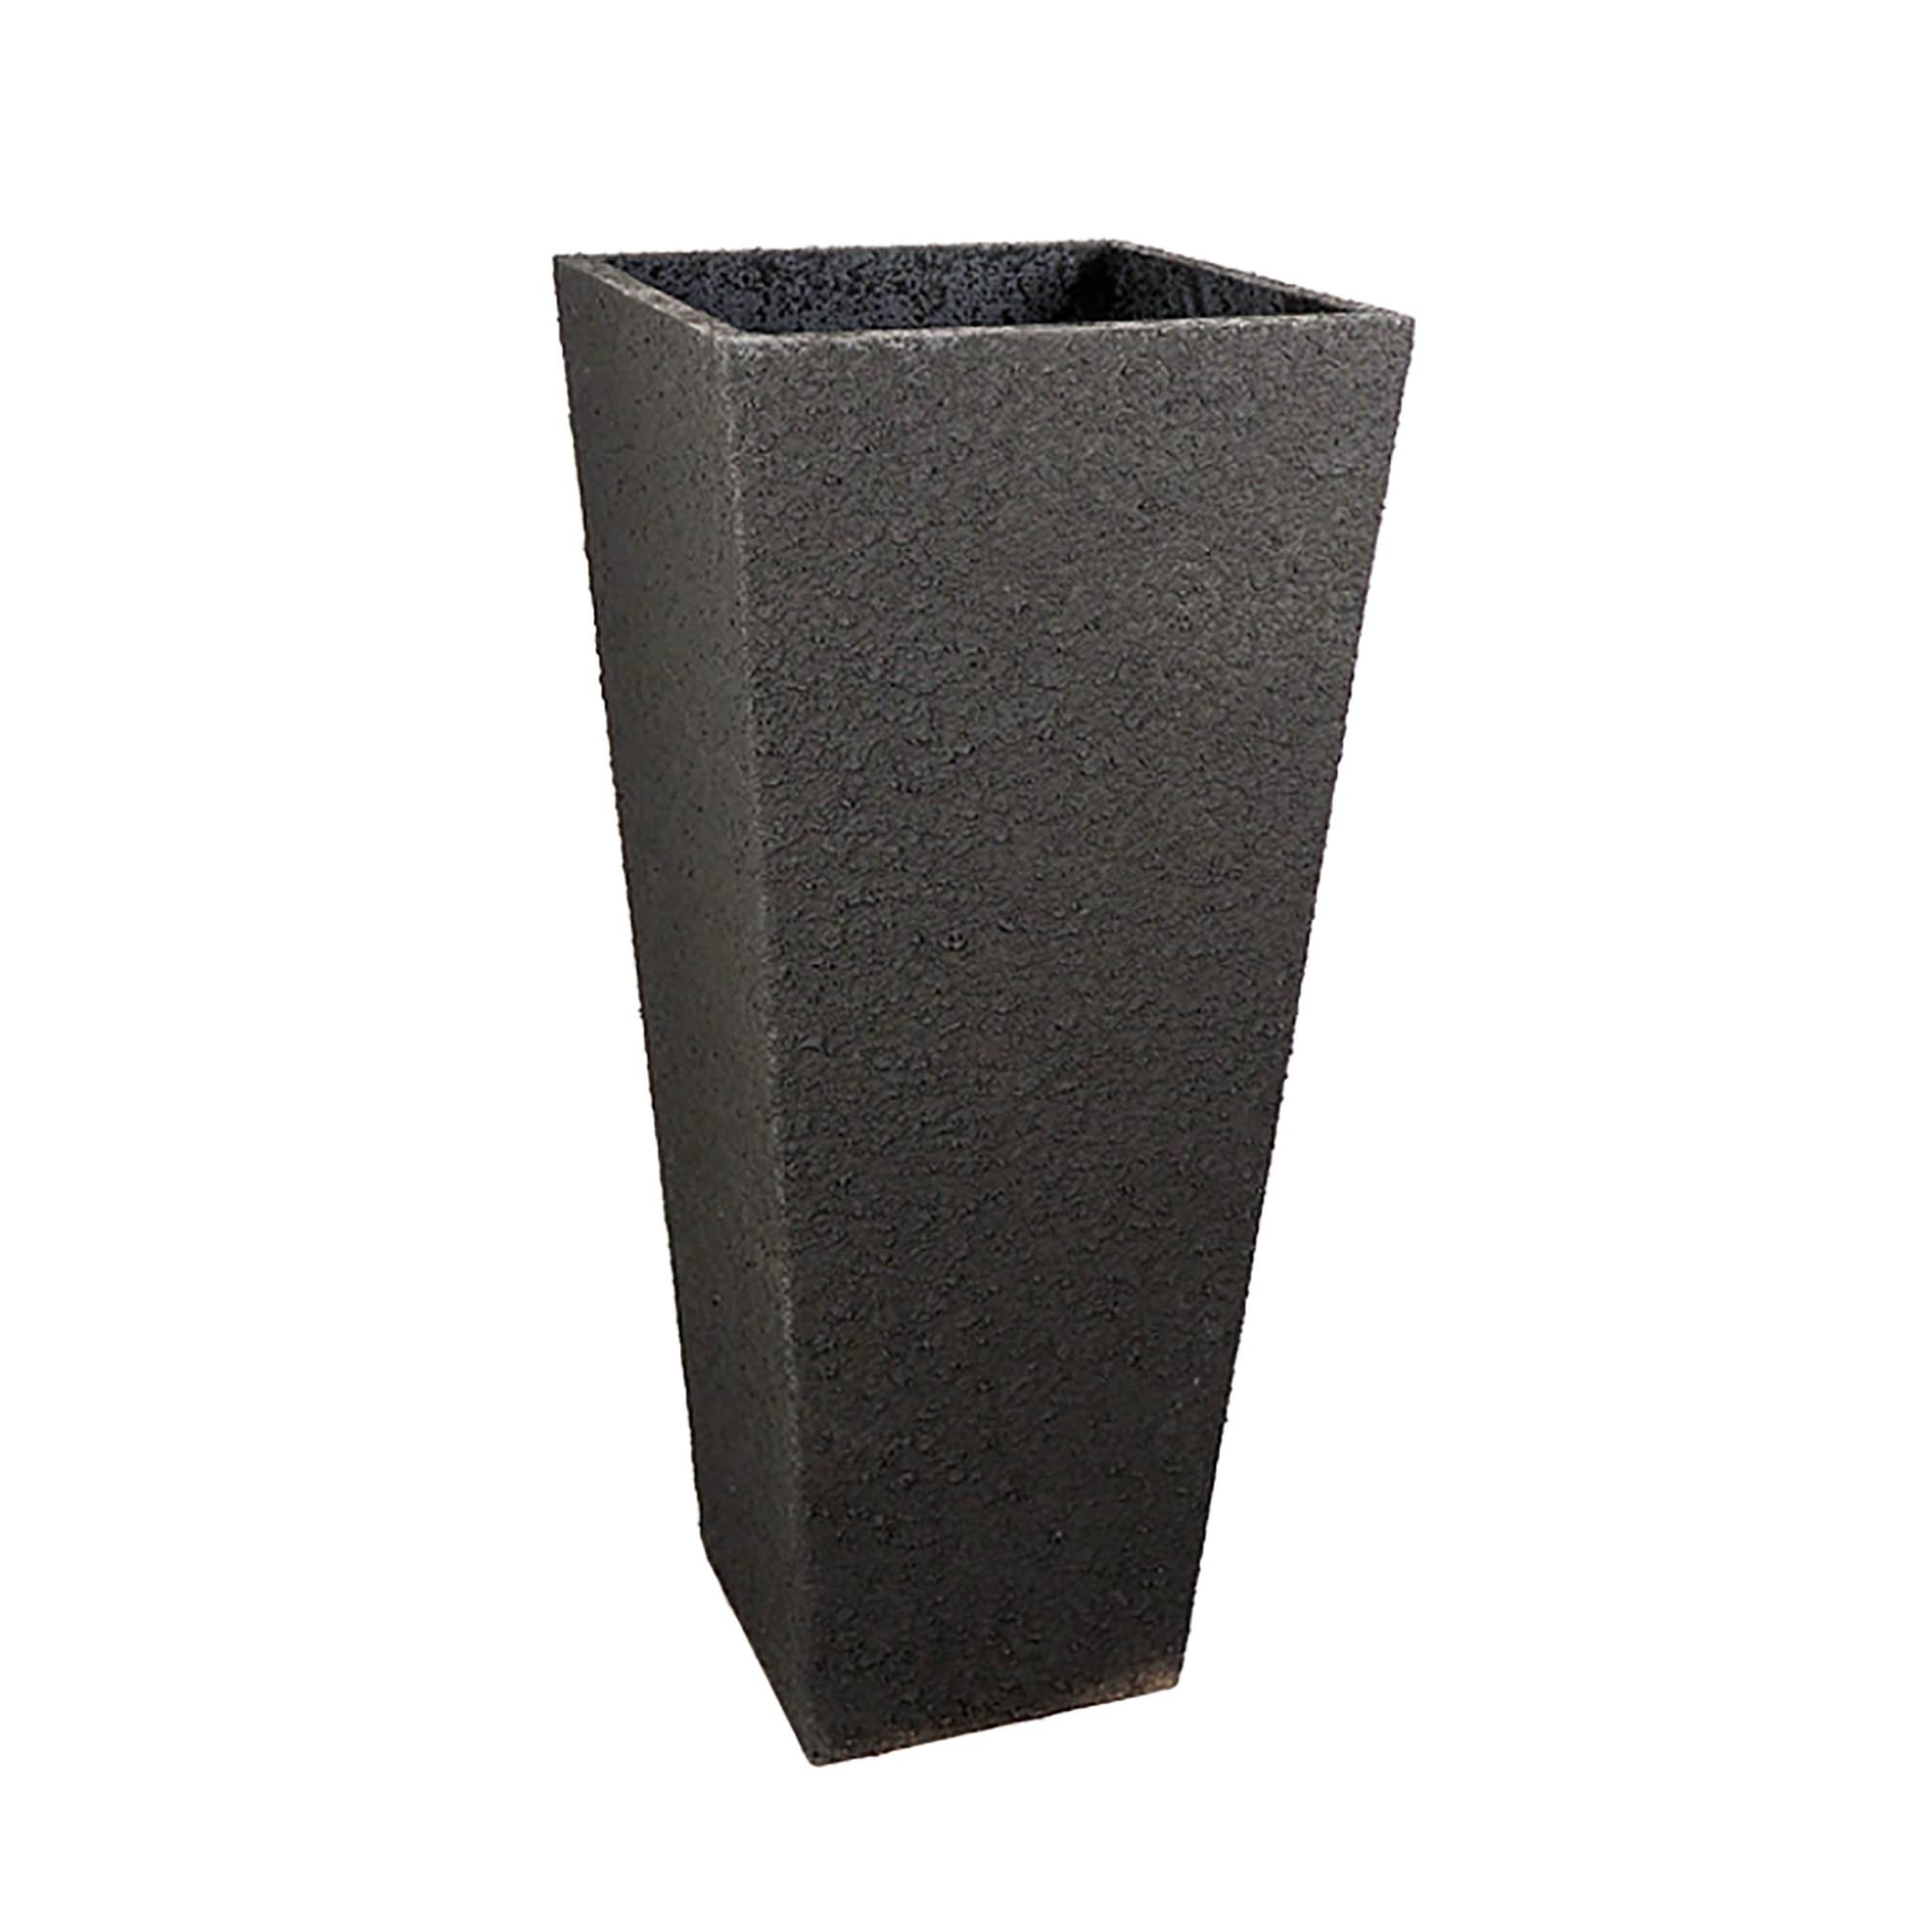 planter tall le inch or available cream xx anthracite square in color outdoor patio grey present fiberclay by pot